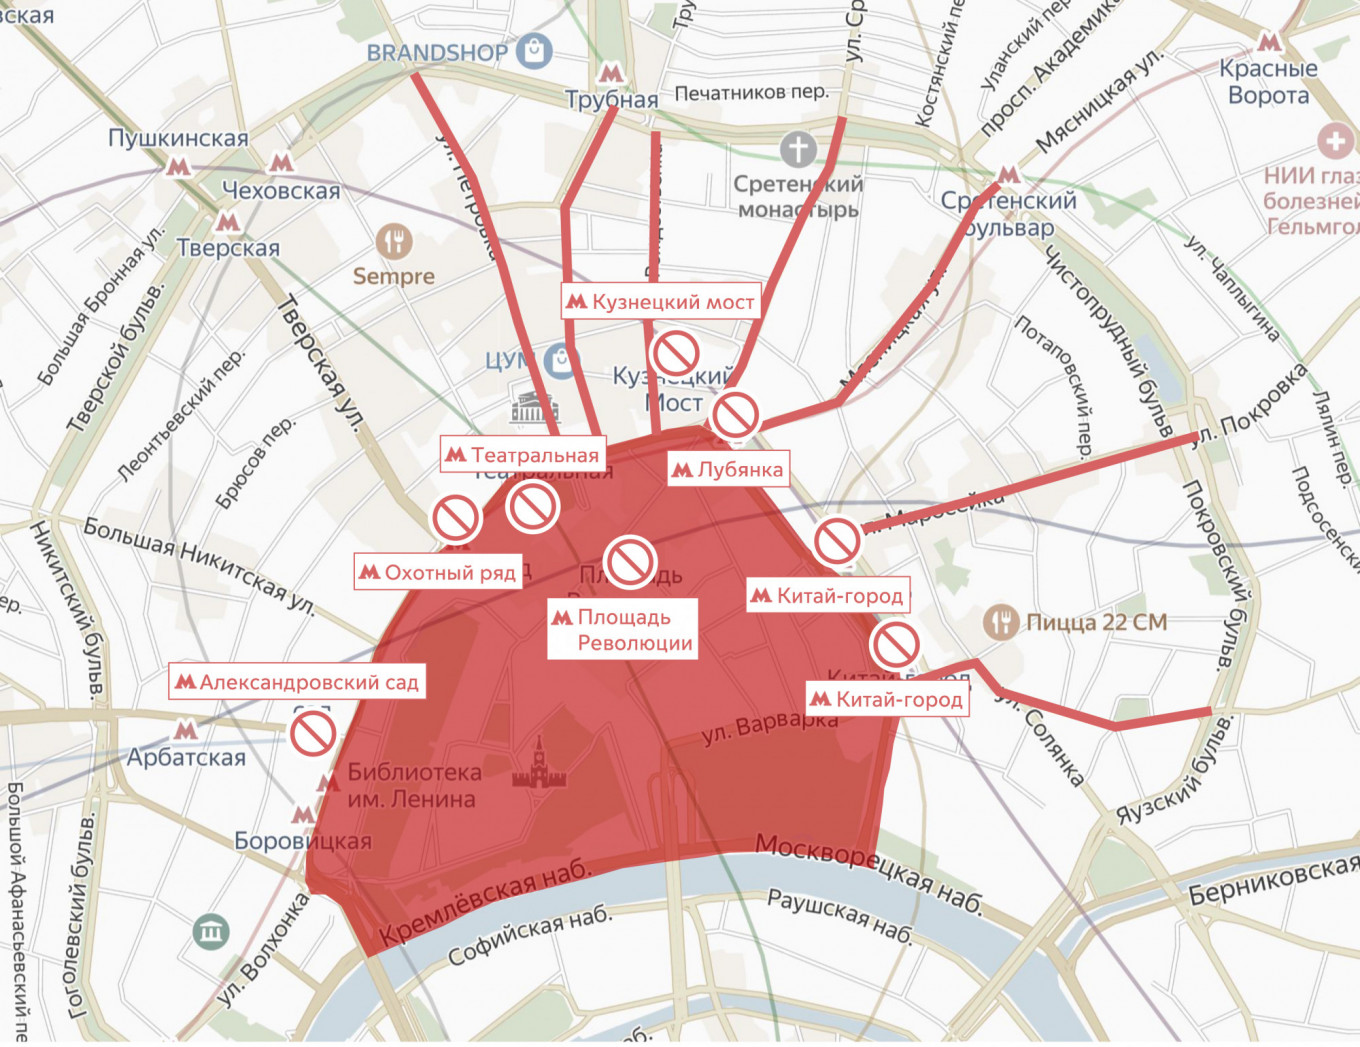 Map of roads and metro stations that will be closed in Moscow at the time of the protest Sunday. Cafes and bars will also close and the sale of alcohol will be restricted. Russian Interior Ministry